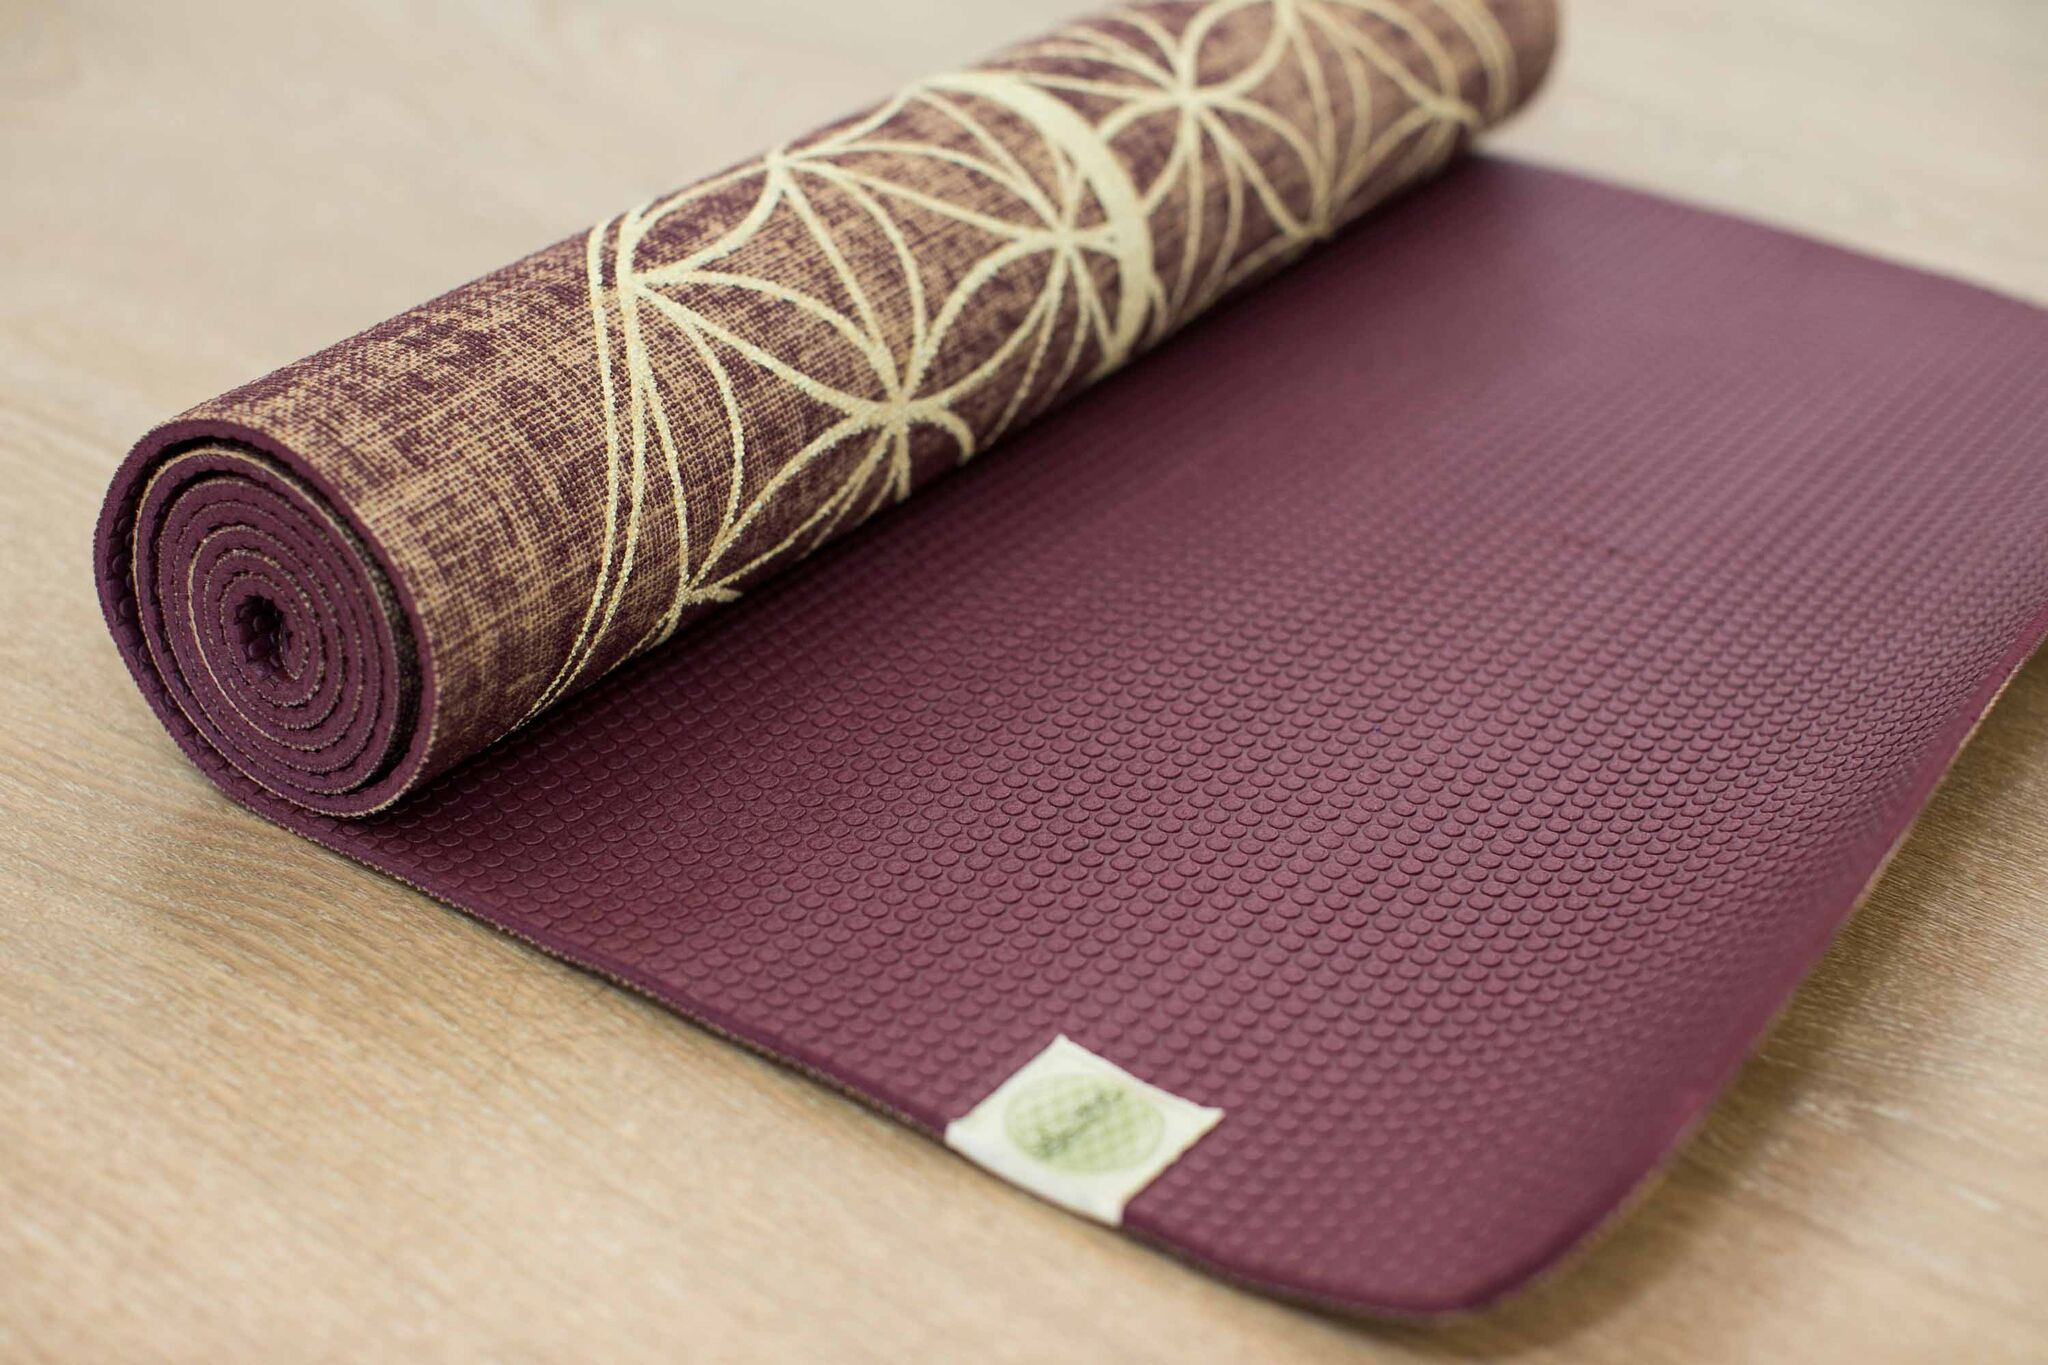 mats love img cheap violet mecca mat yoga blisscloud products i